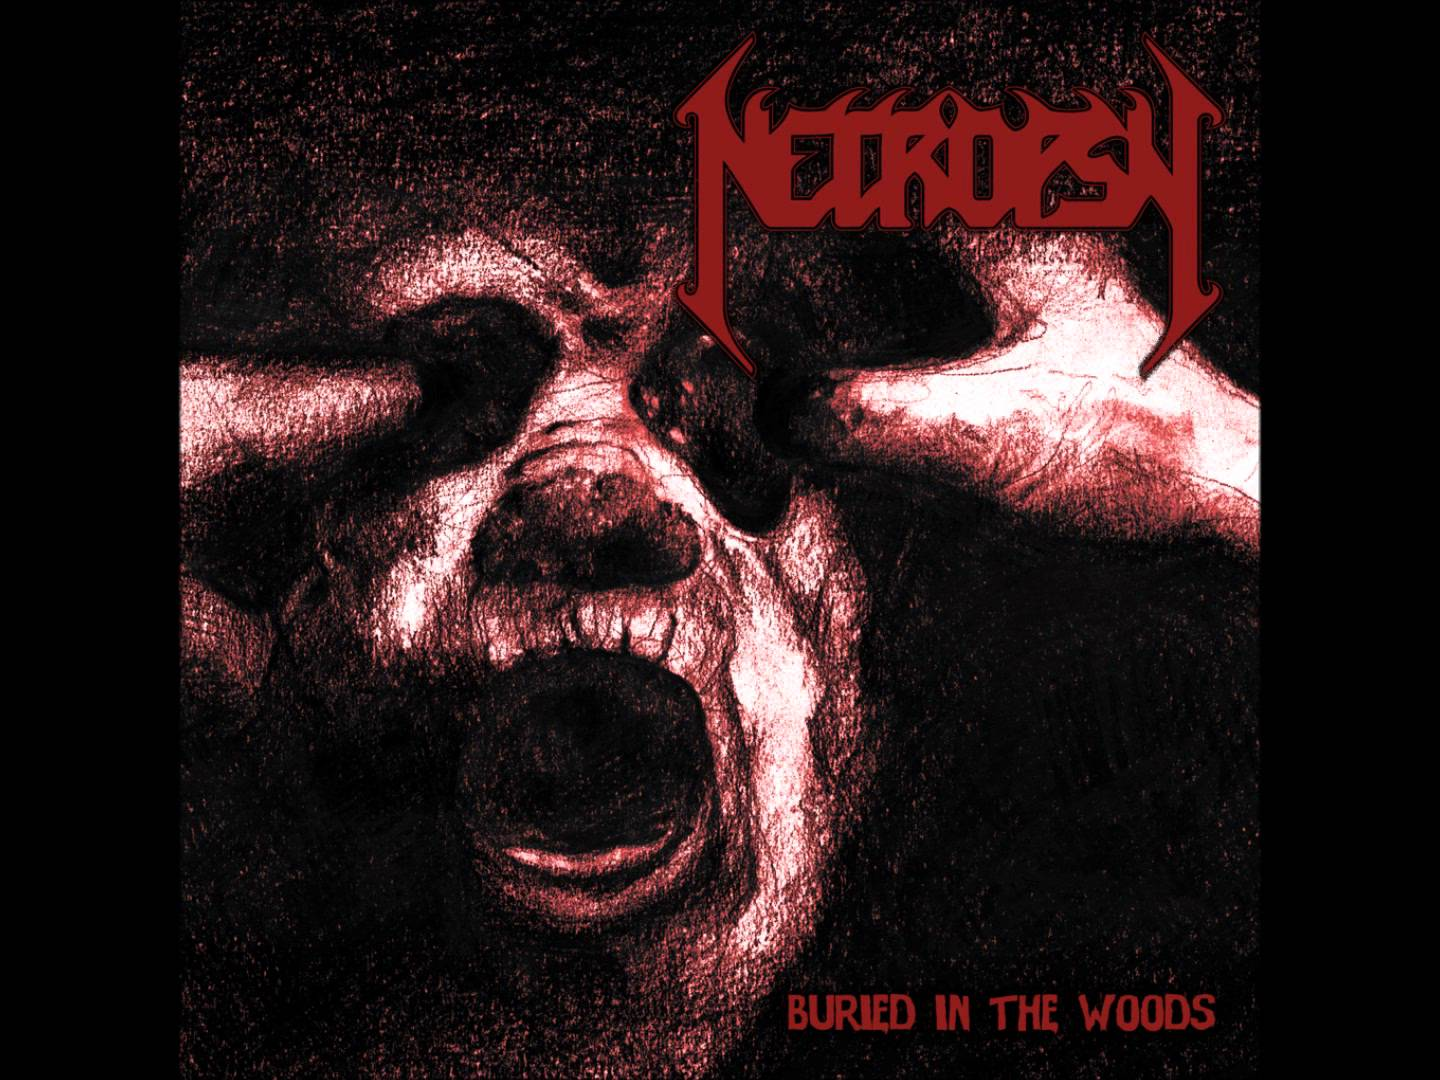 Necropsy – Buried In the Woods